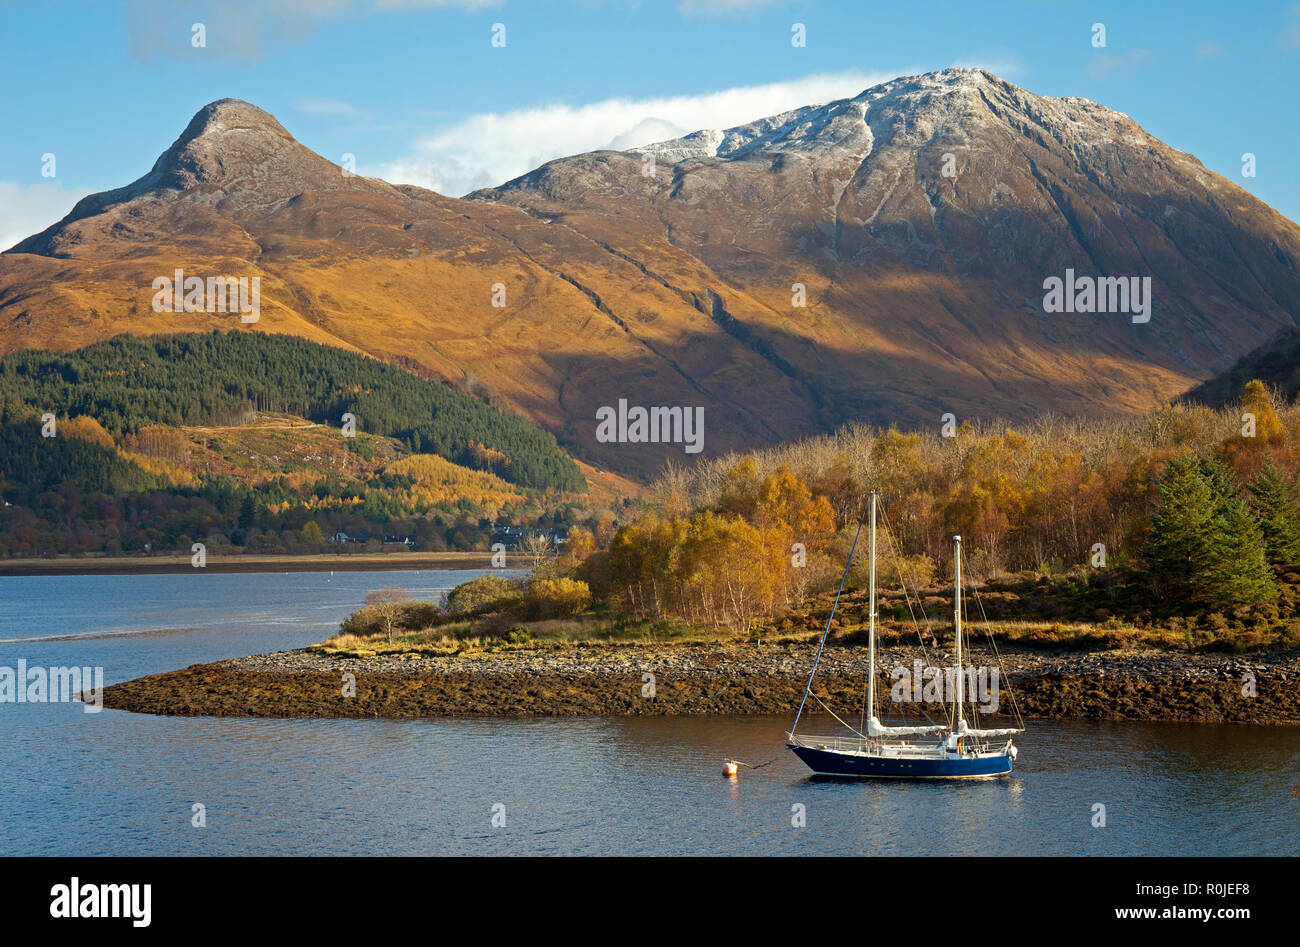 Pap of Glencoe mountain, over Loch Leven from Ballachulish, Lochaber, Scotland, UK - Stock Image